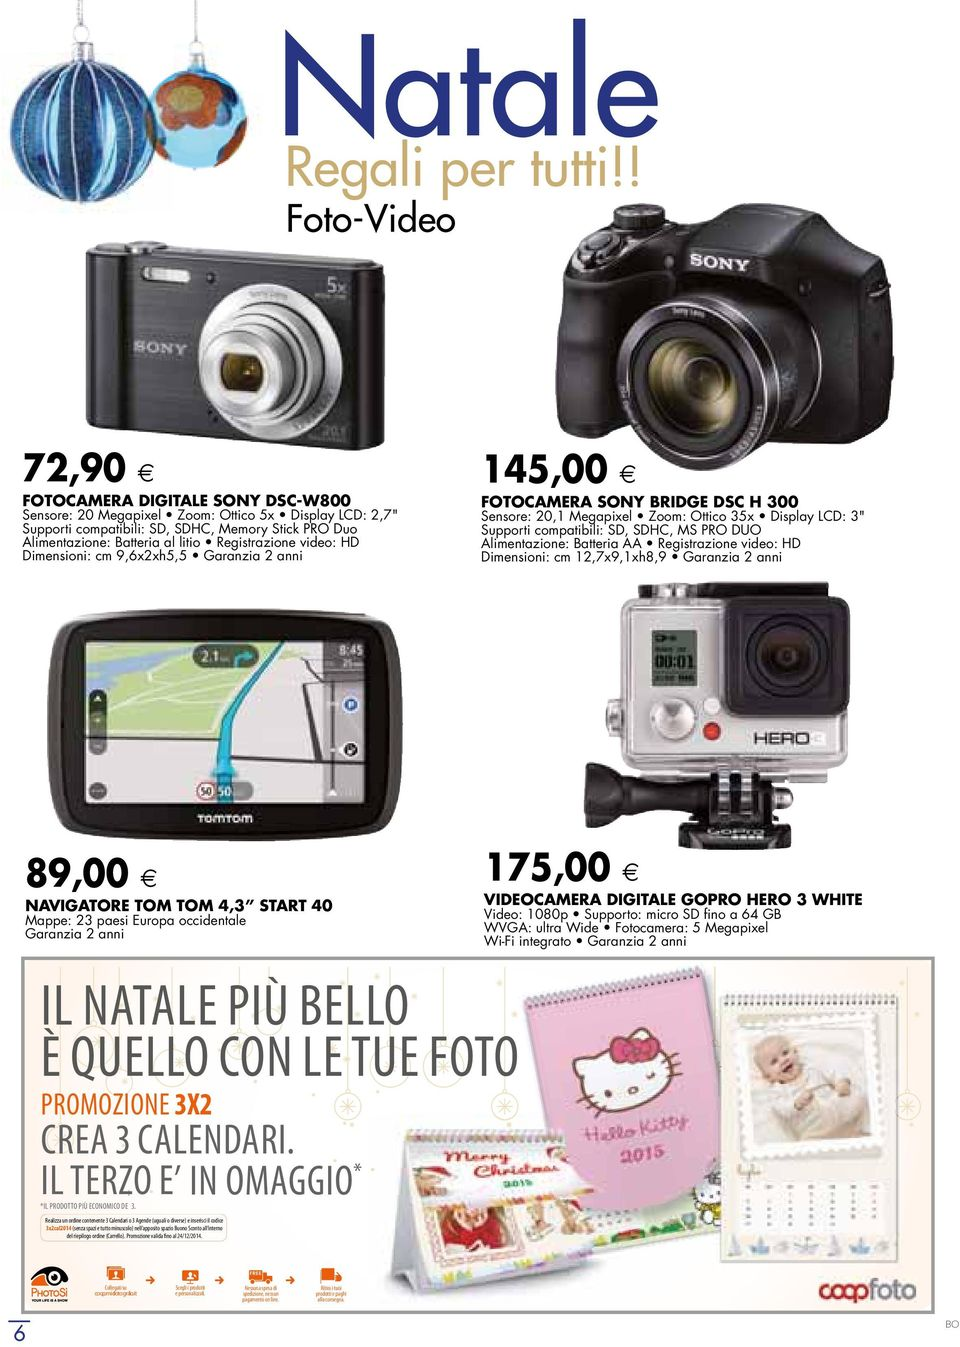 "Registrazione video: HD Dimensioni: cm 9,6x2xh5,5 145, 00 FOTOCAMERA SONY BRIDGE DSC H 300 Sensore: 20,1 Megapixel Zoom: Ottico 35x Display LCD: 3"" Supporti compatibili: SD, SDHC, MS PRO DUO"